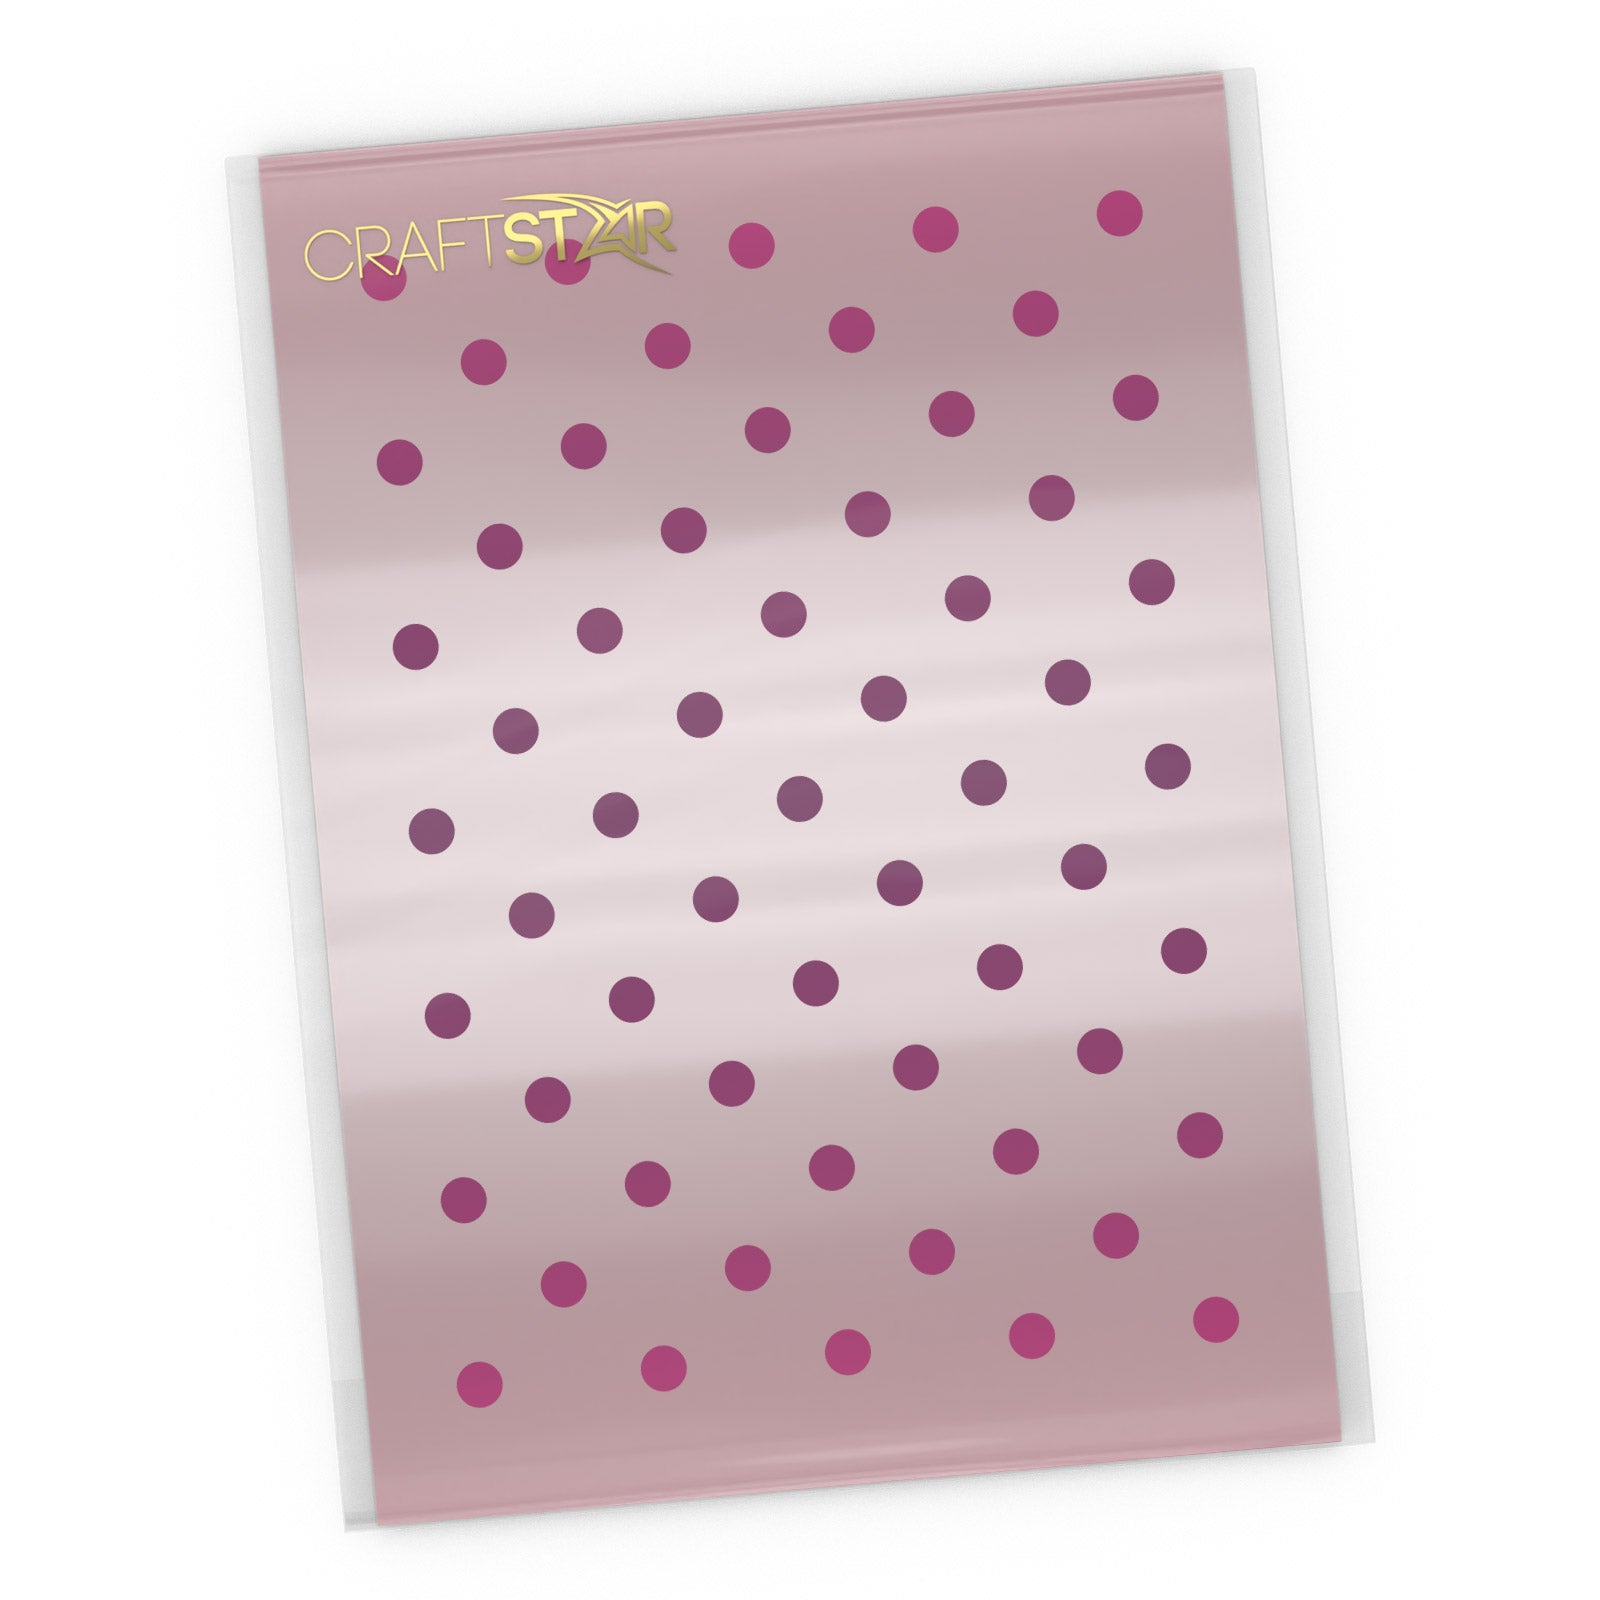 Polka Dot Background Stencil - Craft Seamless Dot Pattern Template